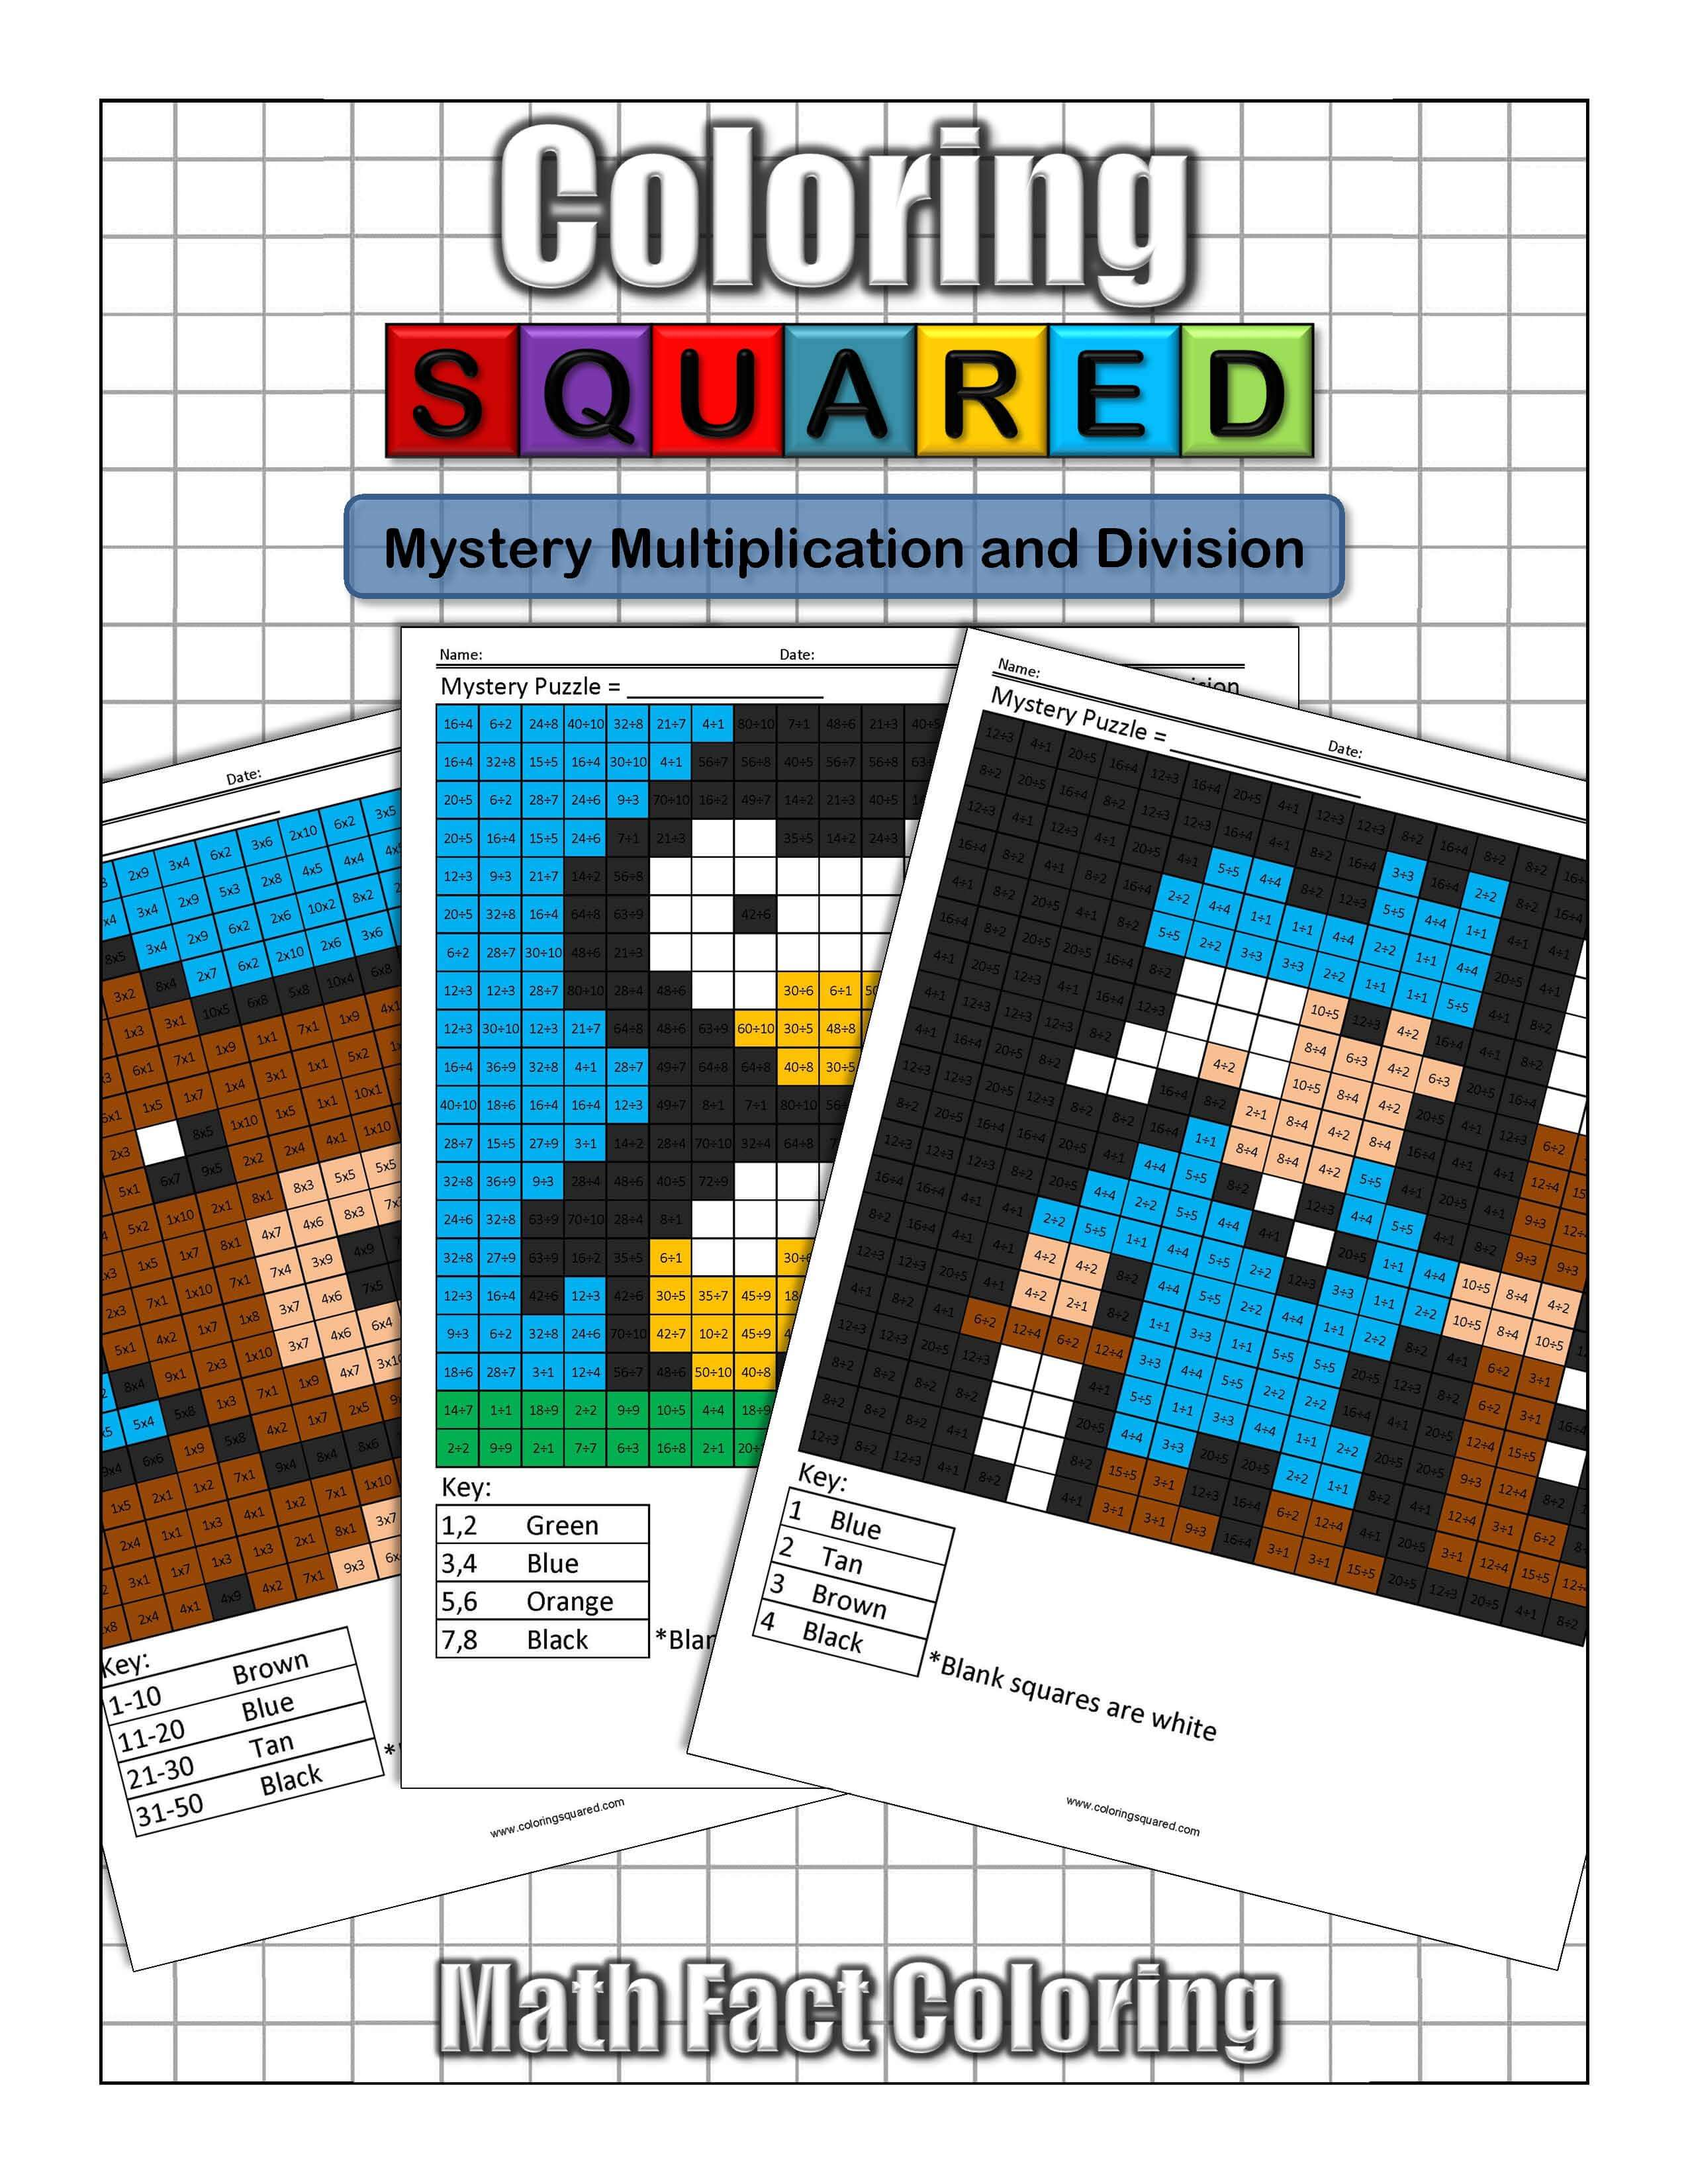 Mystery Multiplication - Coloring Squared